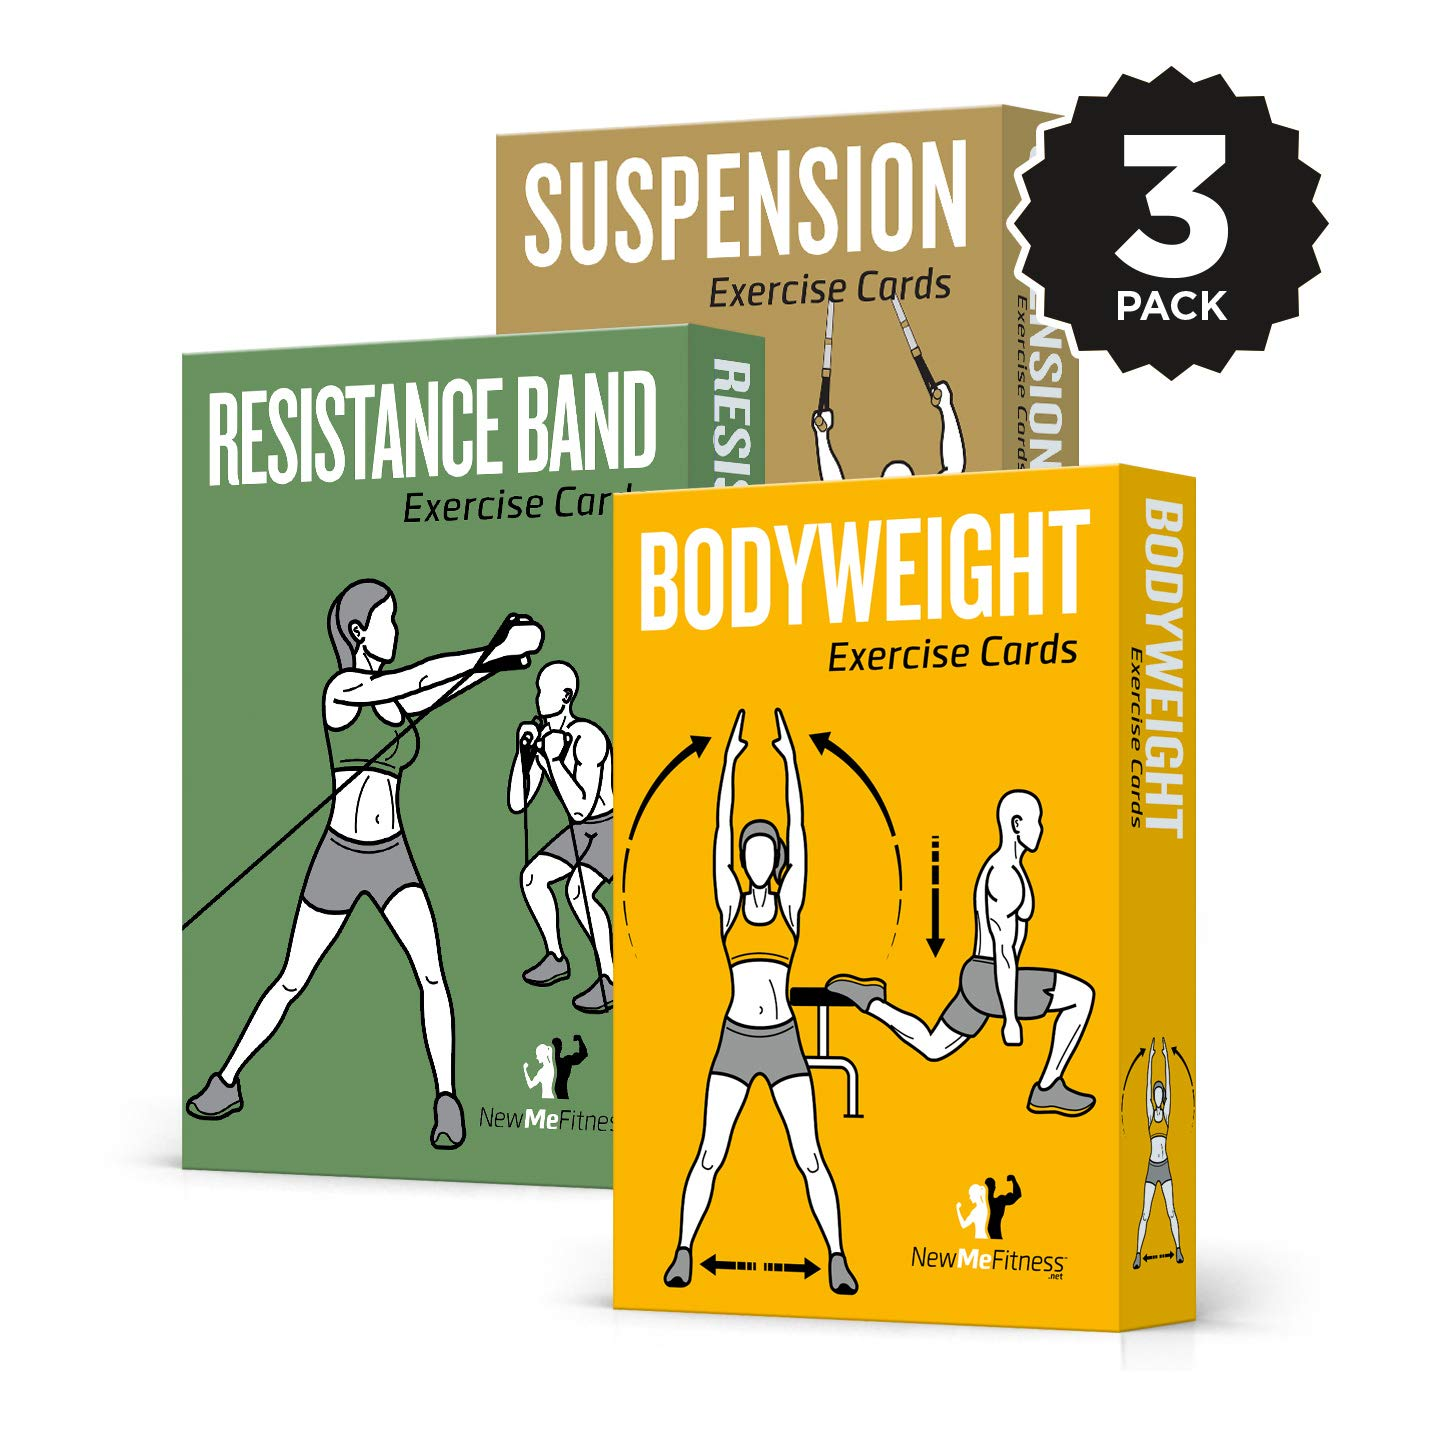 NewMe Fitness Exercise Cards 3 Pack of 62 :: Bodyweight, Suspension, Resistance Band :: 50 Exercises a Total Body Workout :: Extra Large, Waterproof & Durable Diagrams & Instructions